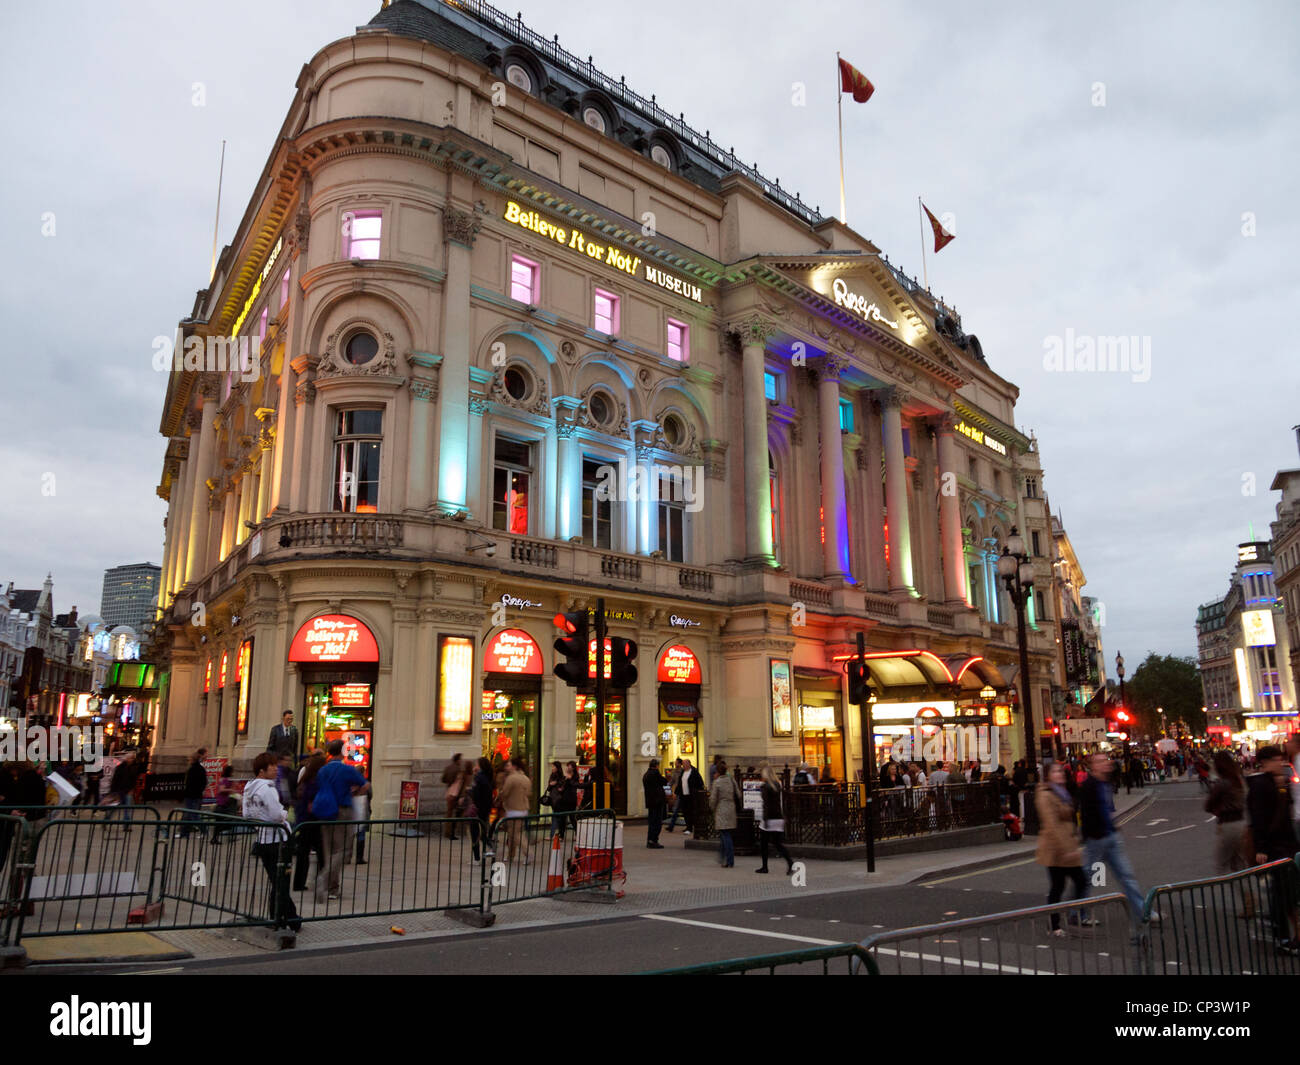 ripleys believe it or not building in piccadilly london at dusk